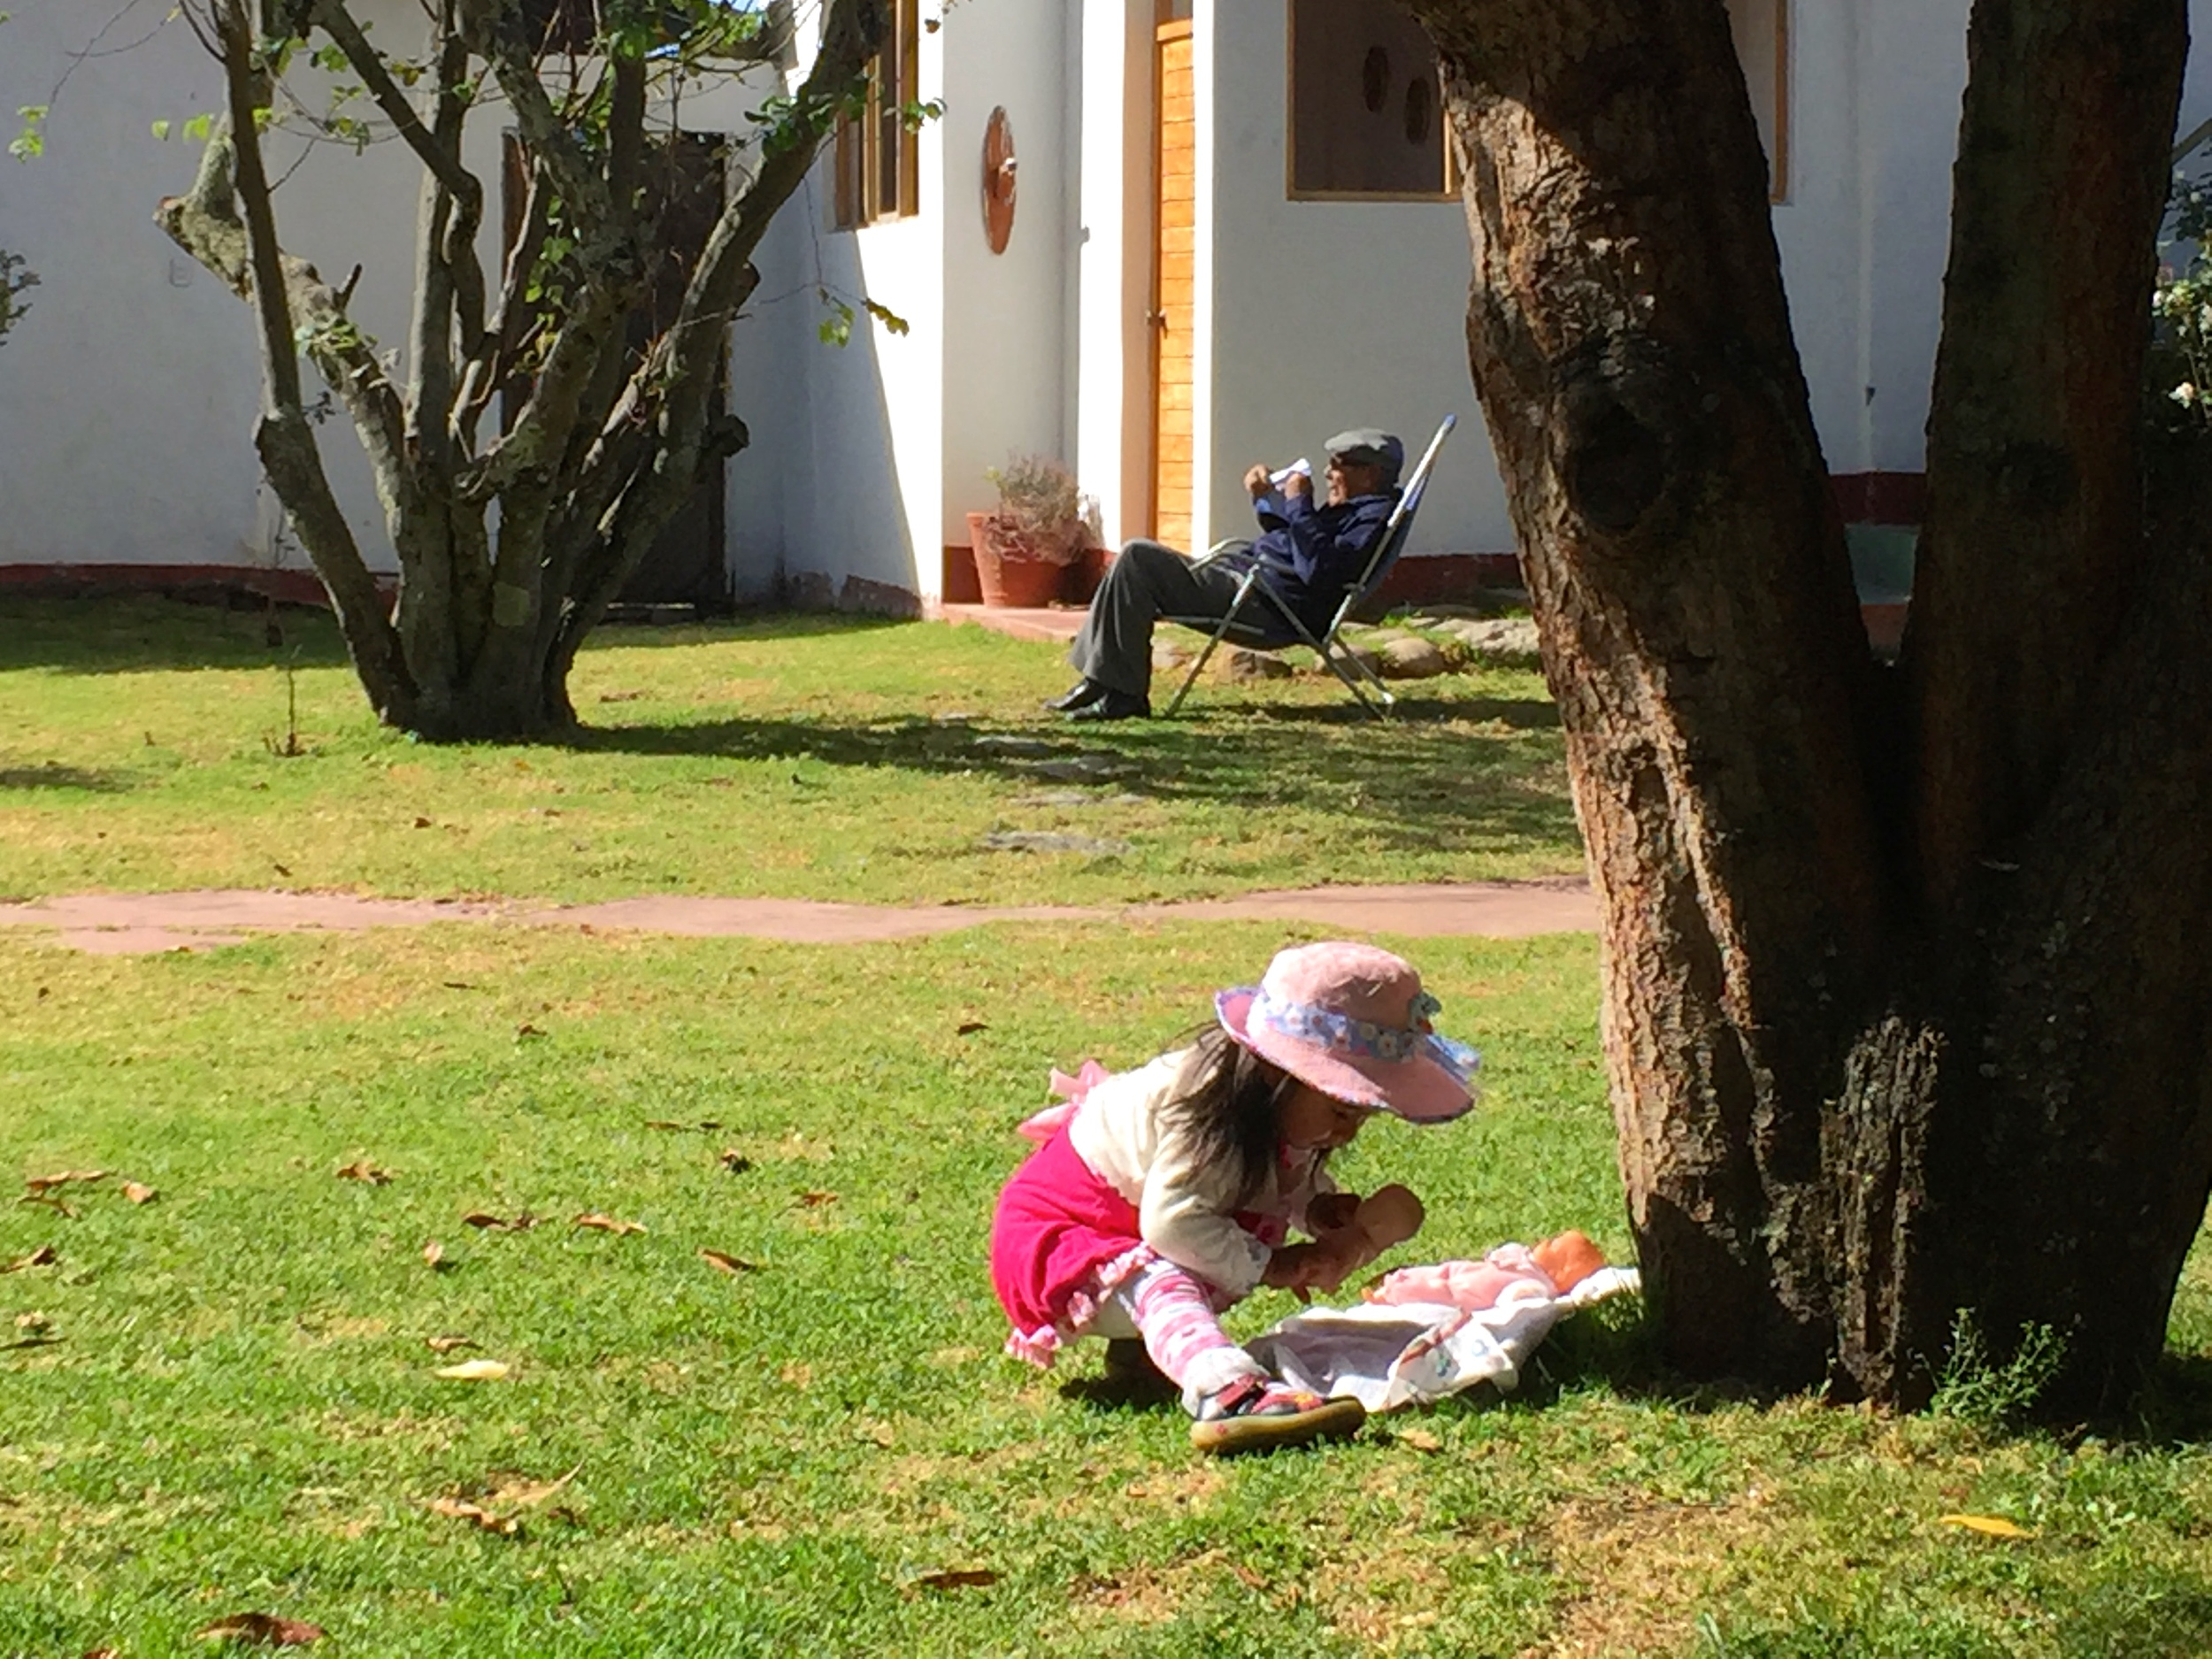 During the day, this little girl played while grandpa relaxed in the sun. It was a lovely family vibe.